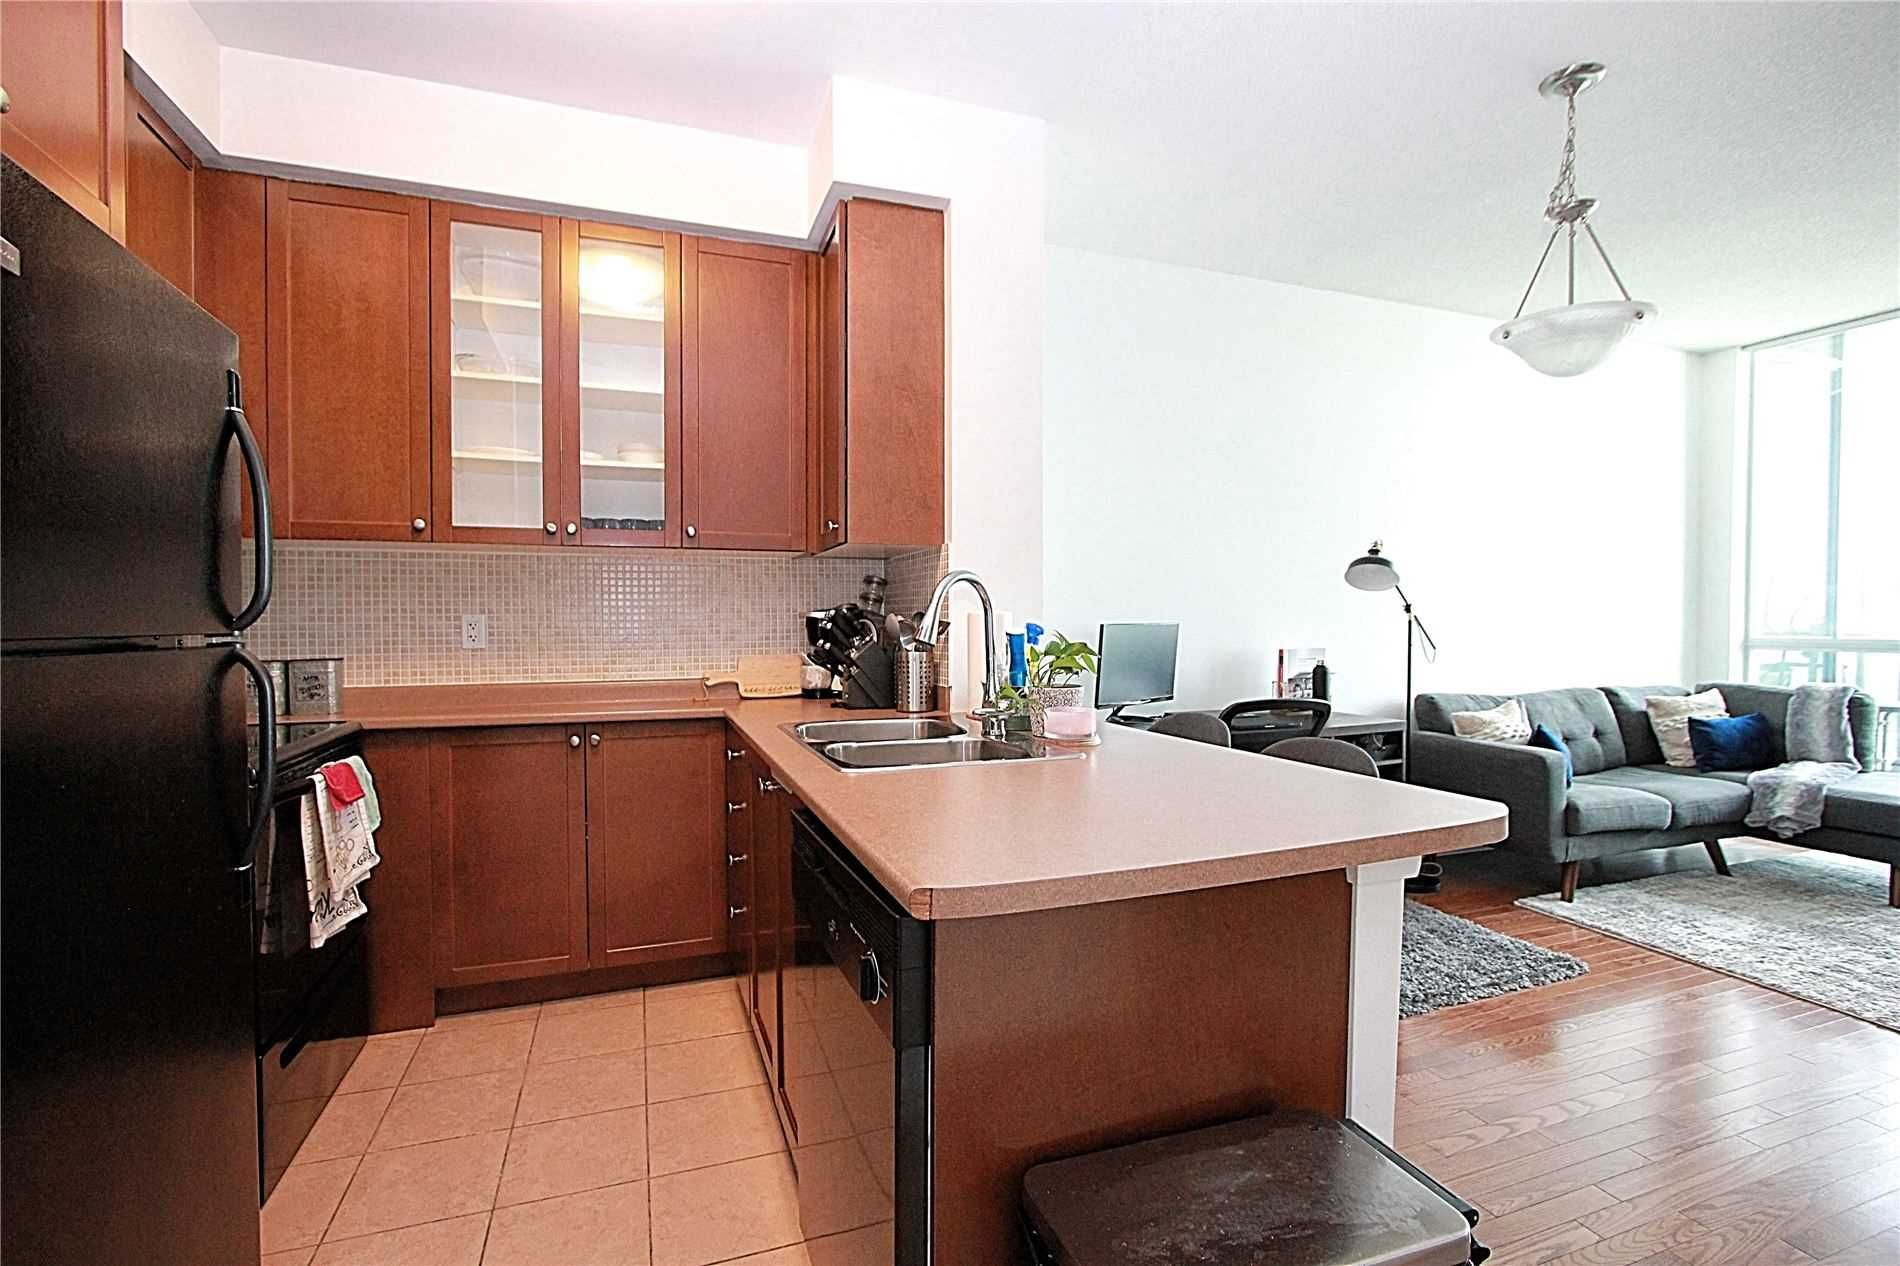 235 Sherway Gardens Rd, unit 2508 for rent in Toronto - image #2